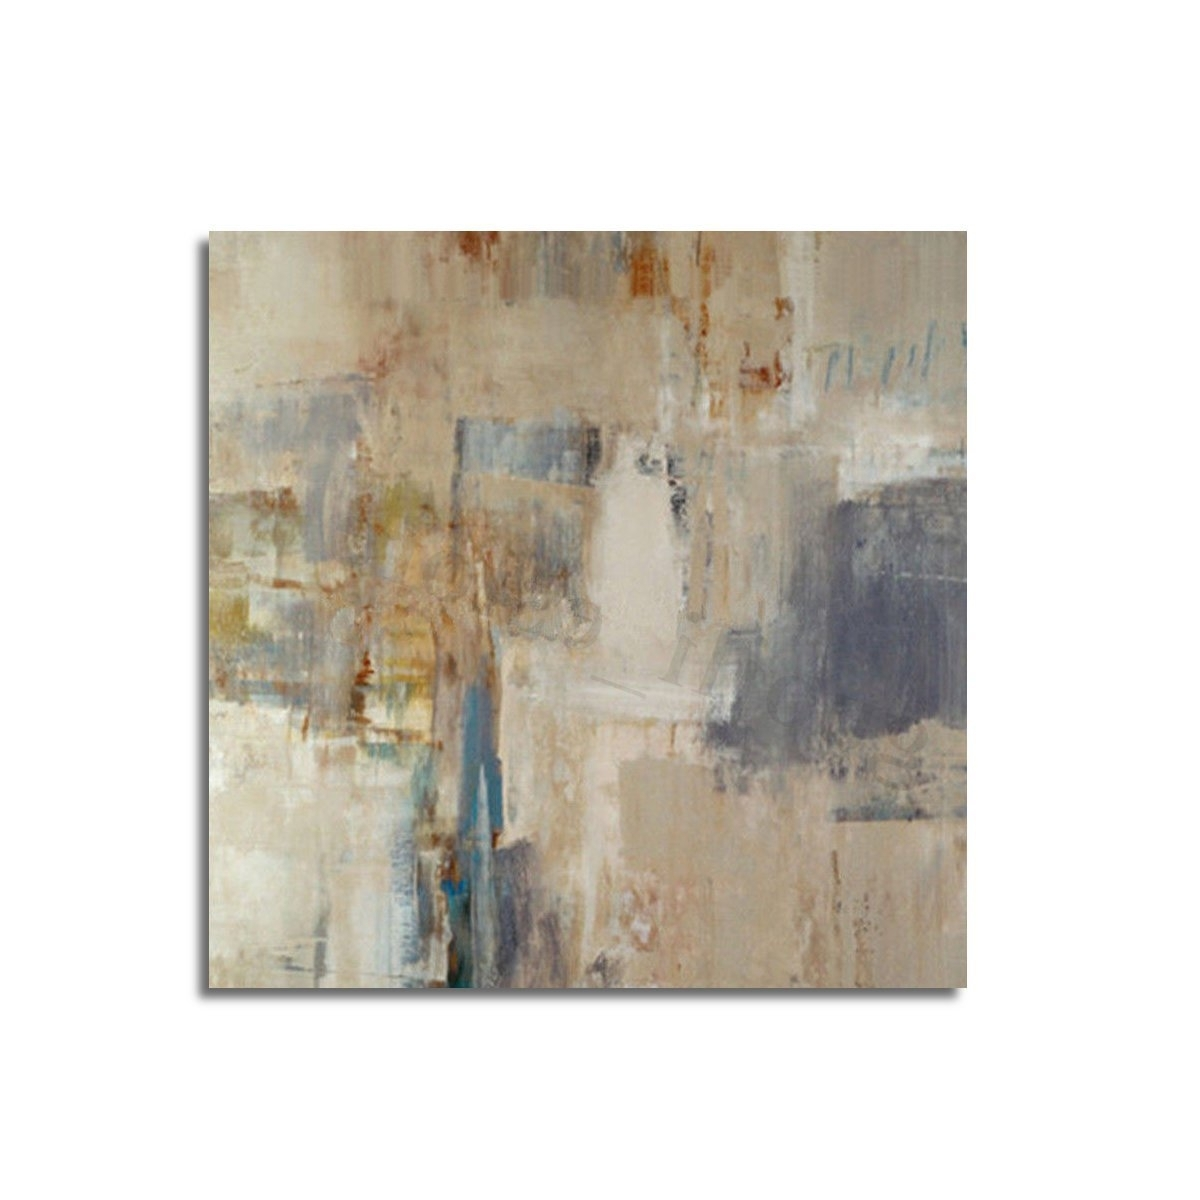 Abstract Oil Painting Wall Art Inside Most Popular 24X24'' Modern Abstract Oil Painting Canvas Wall Art Printed (View 4 of 15)